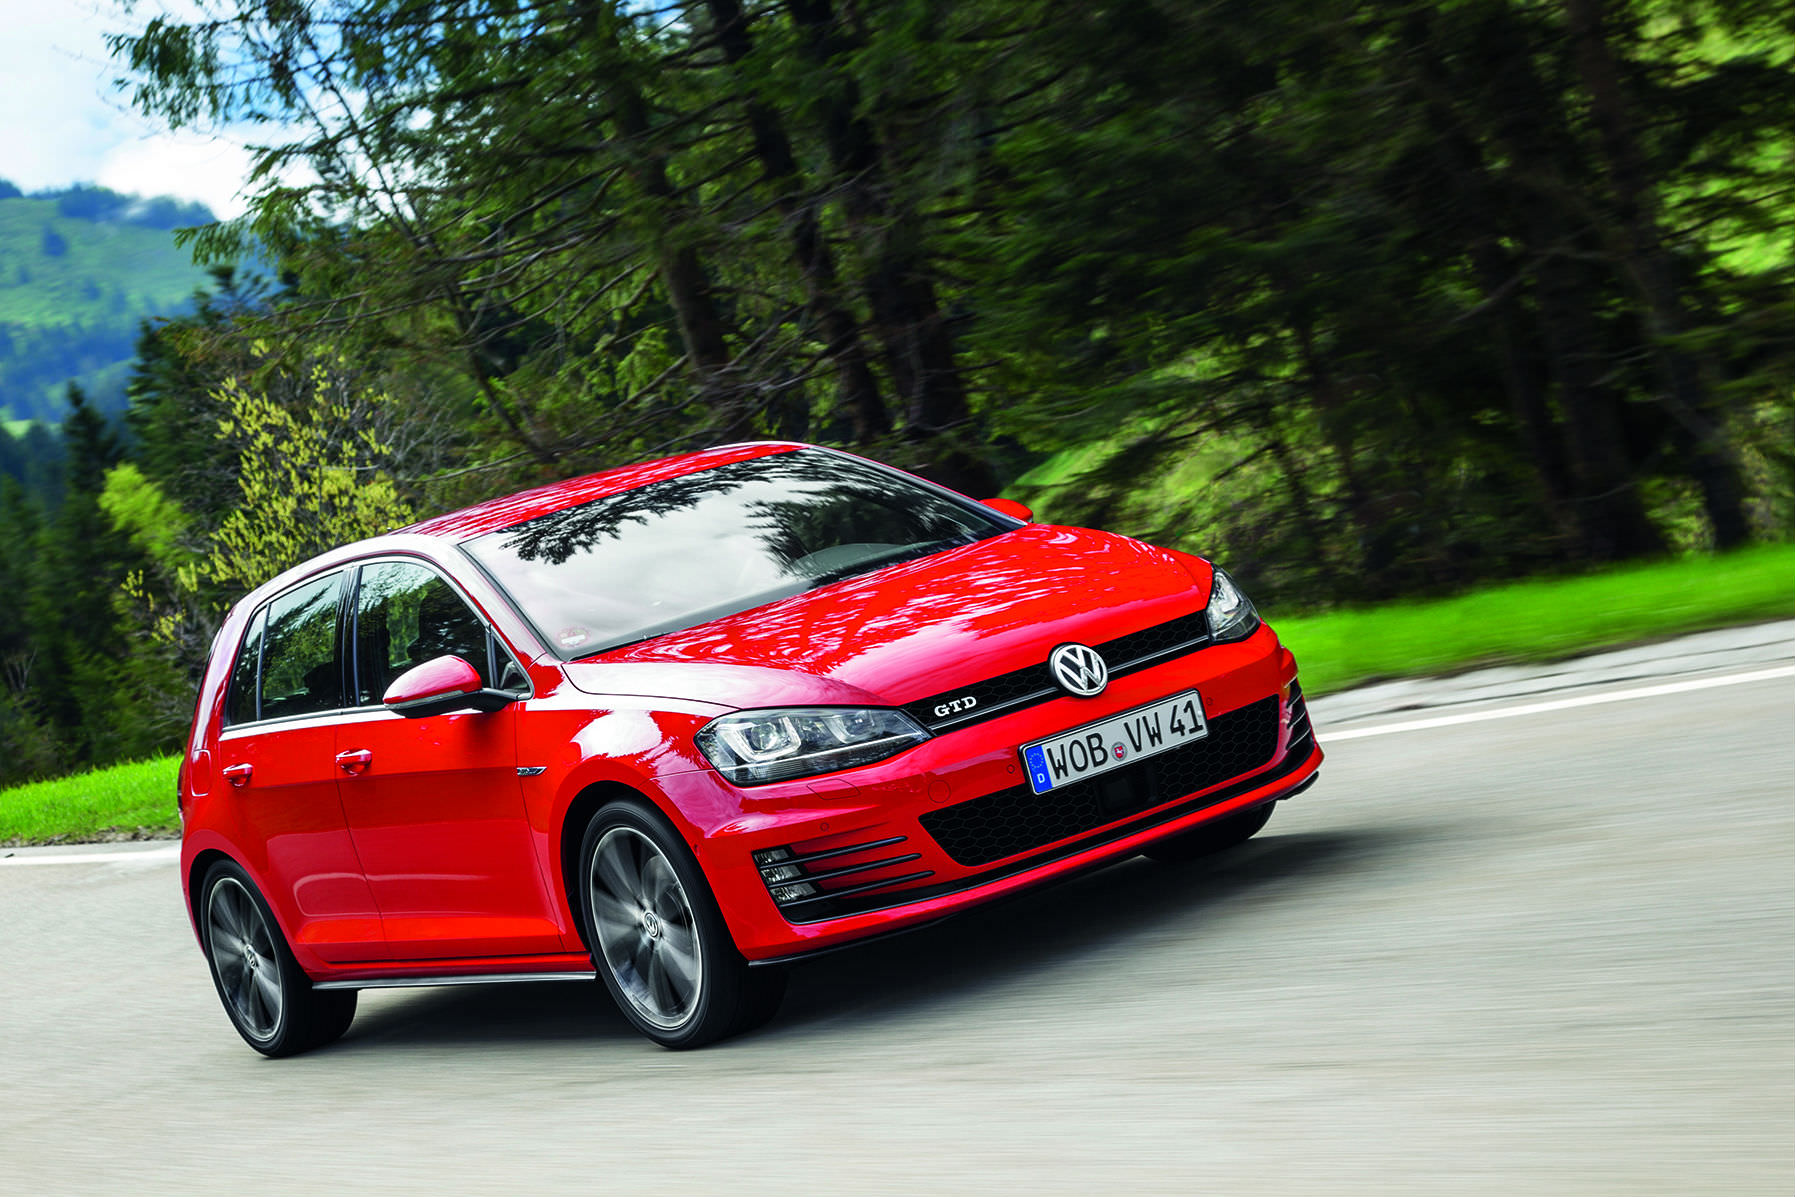 image of a red volkswagen golf gtd car exterior